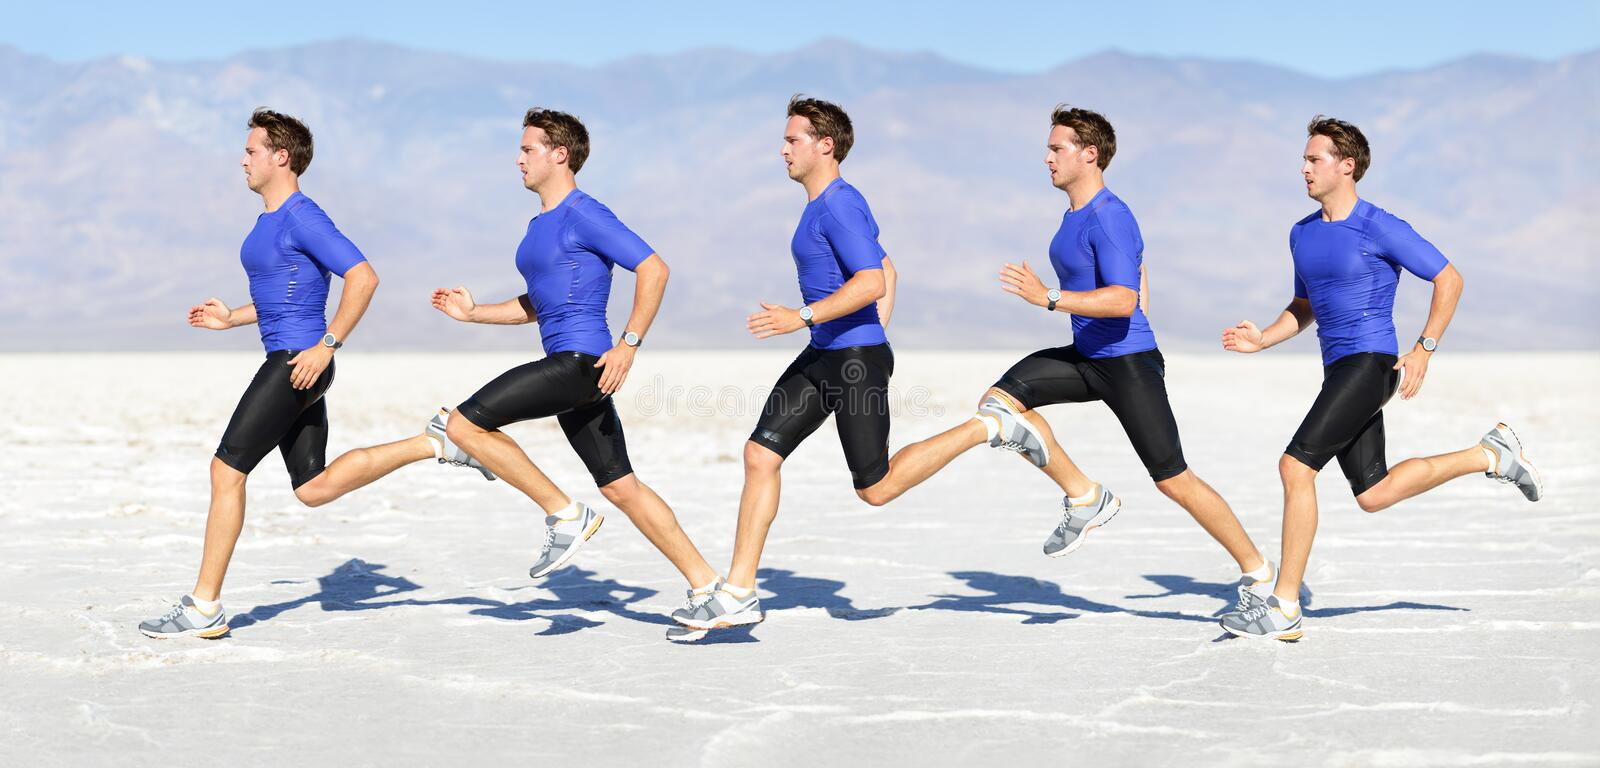 Running man - runner in speed motion composite. Running man - runner in speed showing sprinting motion. Male sport athlete sprinter composite in beautiful nature royalty free stock photos